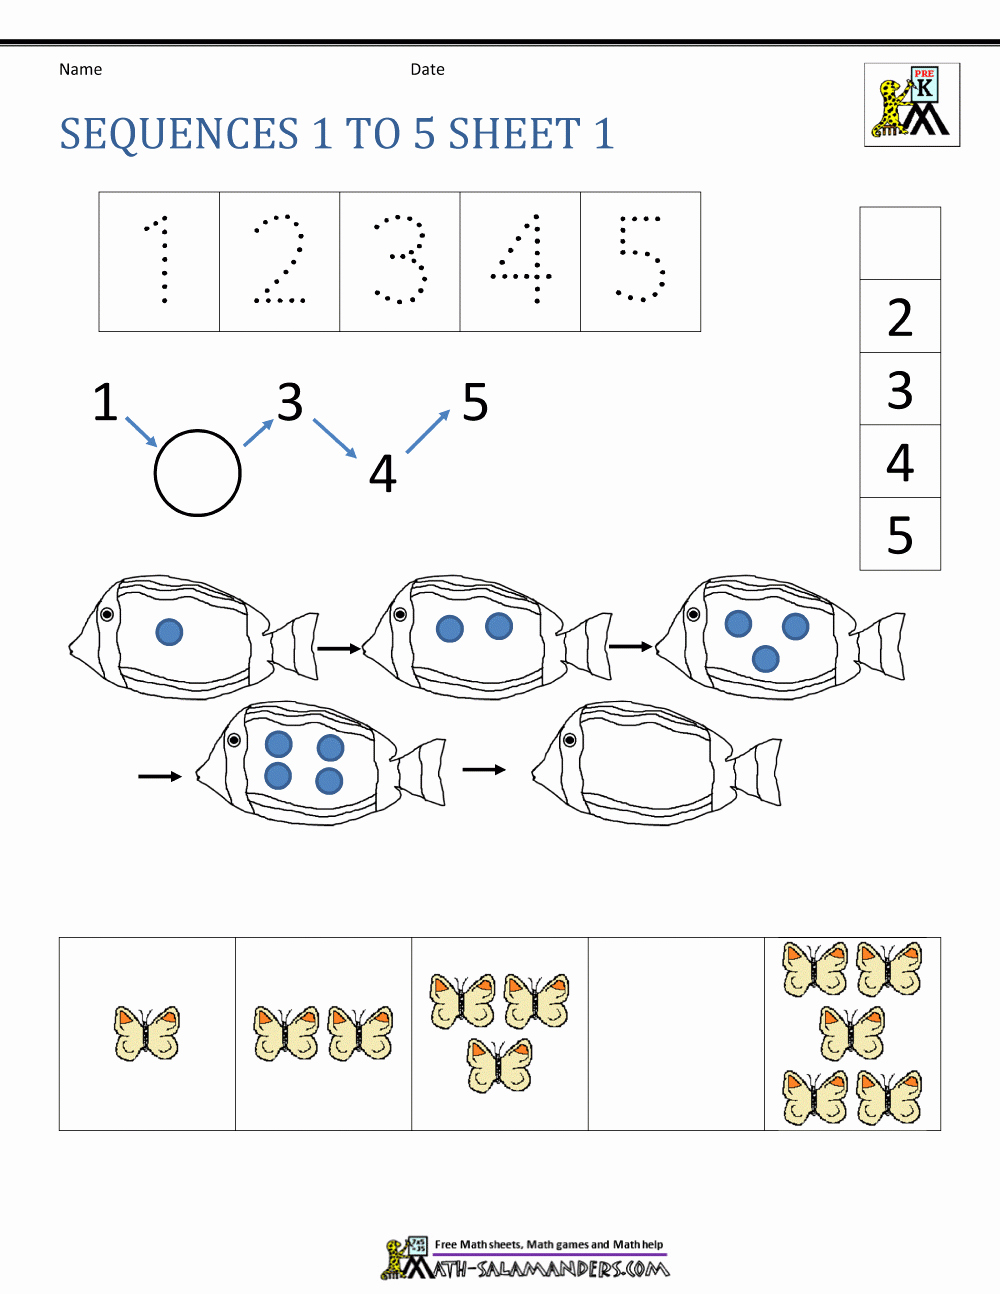 3rd Grade Sequencing Worksheets Inspirational Number Sequence Worksheets 3rd Grade